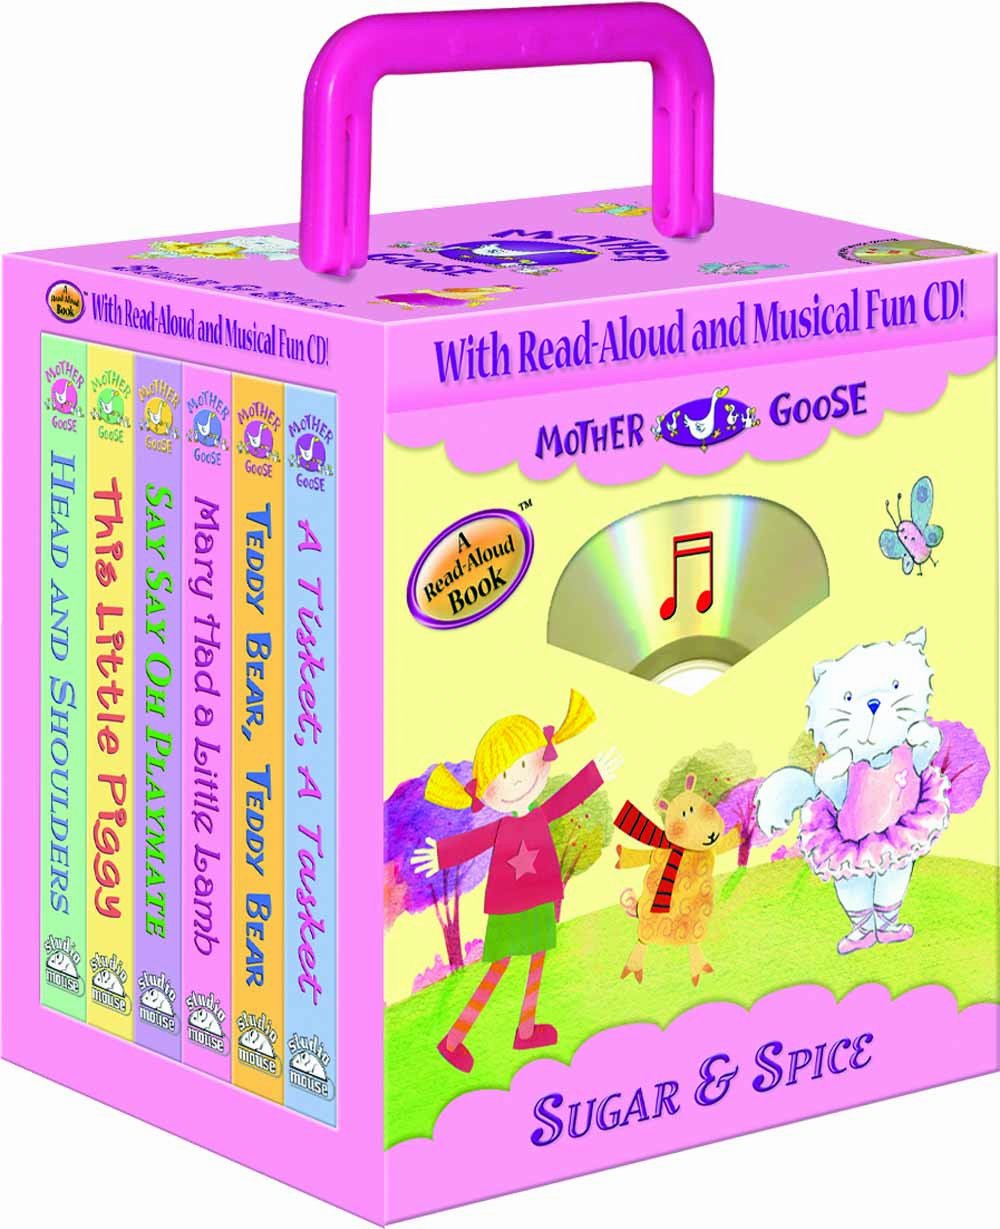 Mother Goose Nursery Rhymes Sugar and Spice 6- books Travel Pack (with audio CD and carrying case) (Travel Pack)